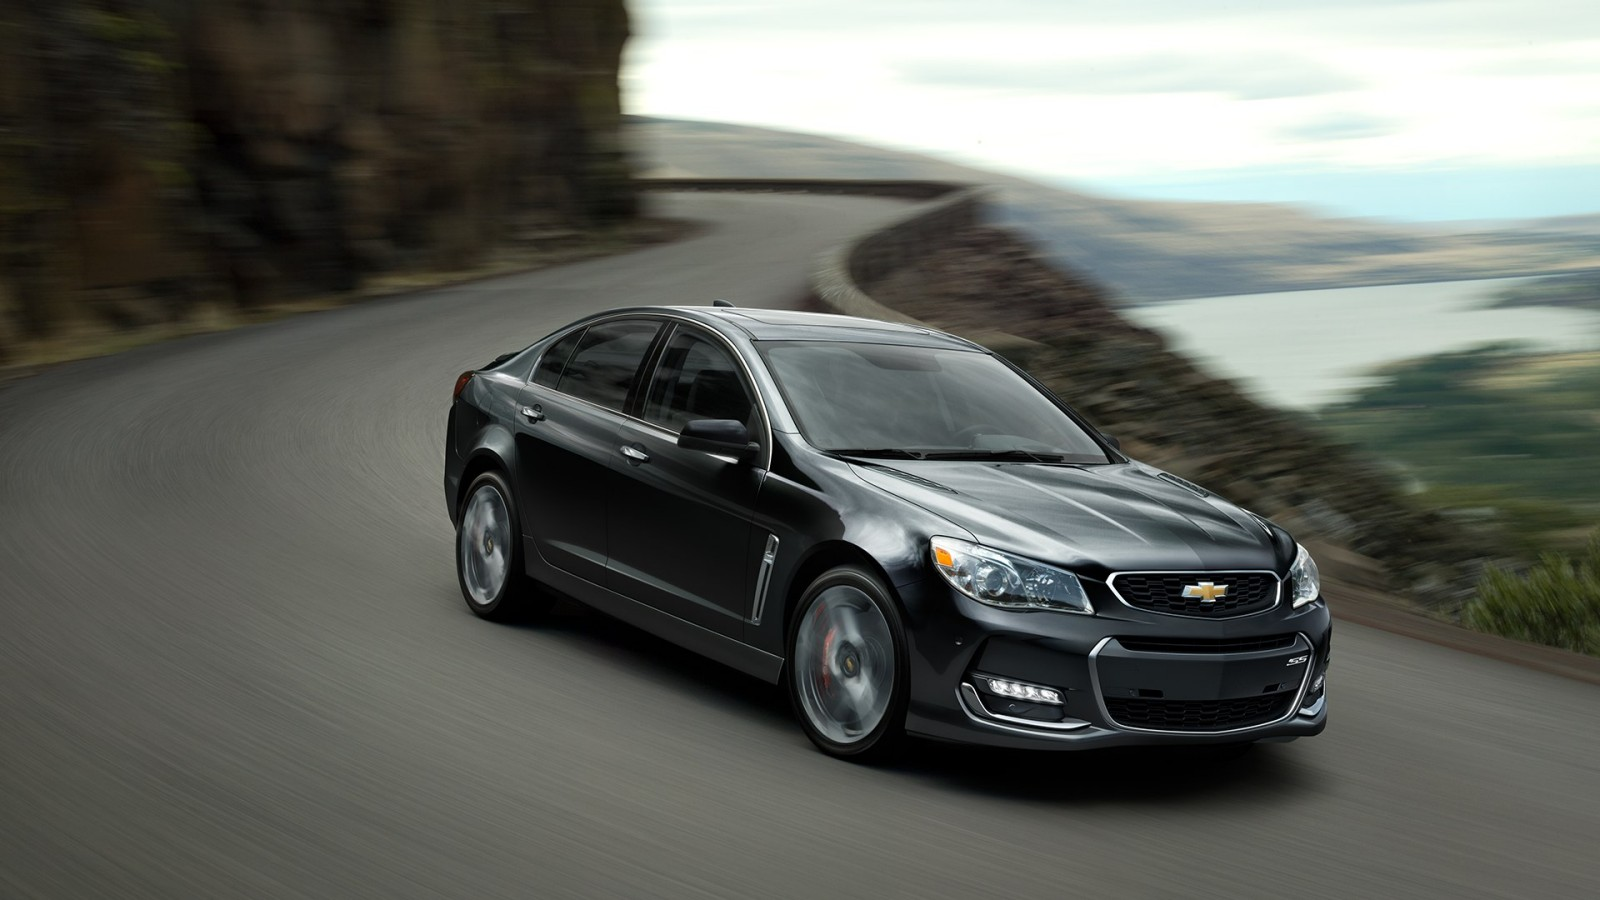 Chevrolet SS St. Louis | Chevy SS Leases St. Louis, MO